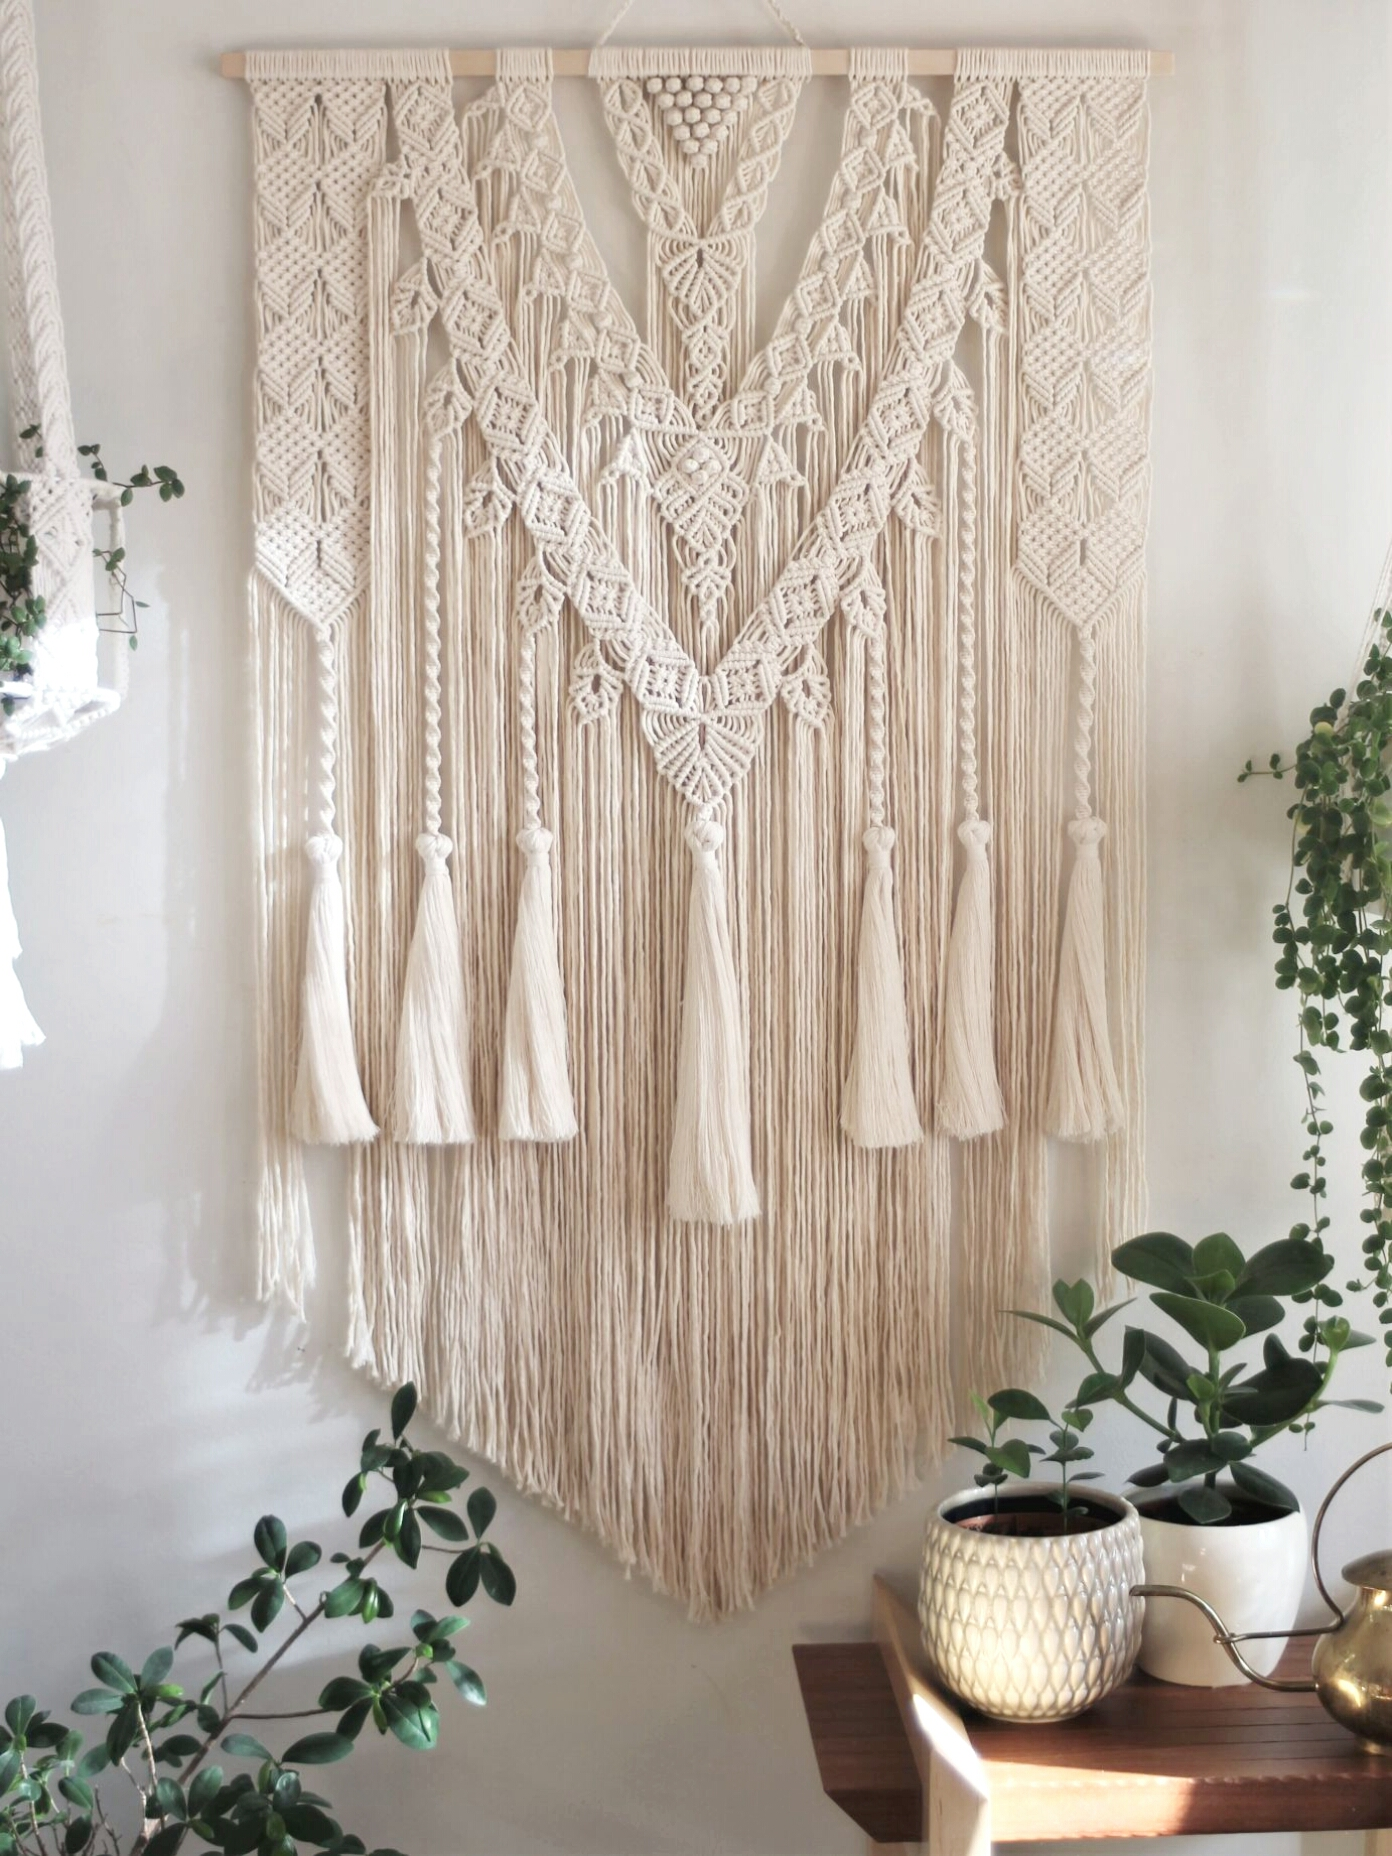 stunning, decorative macrame wall decor